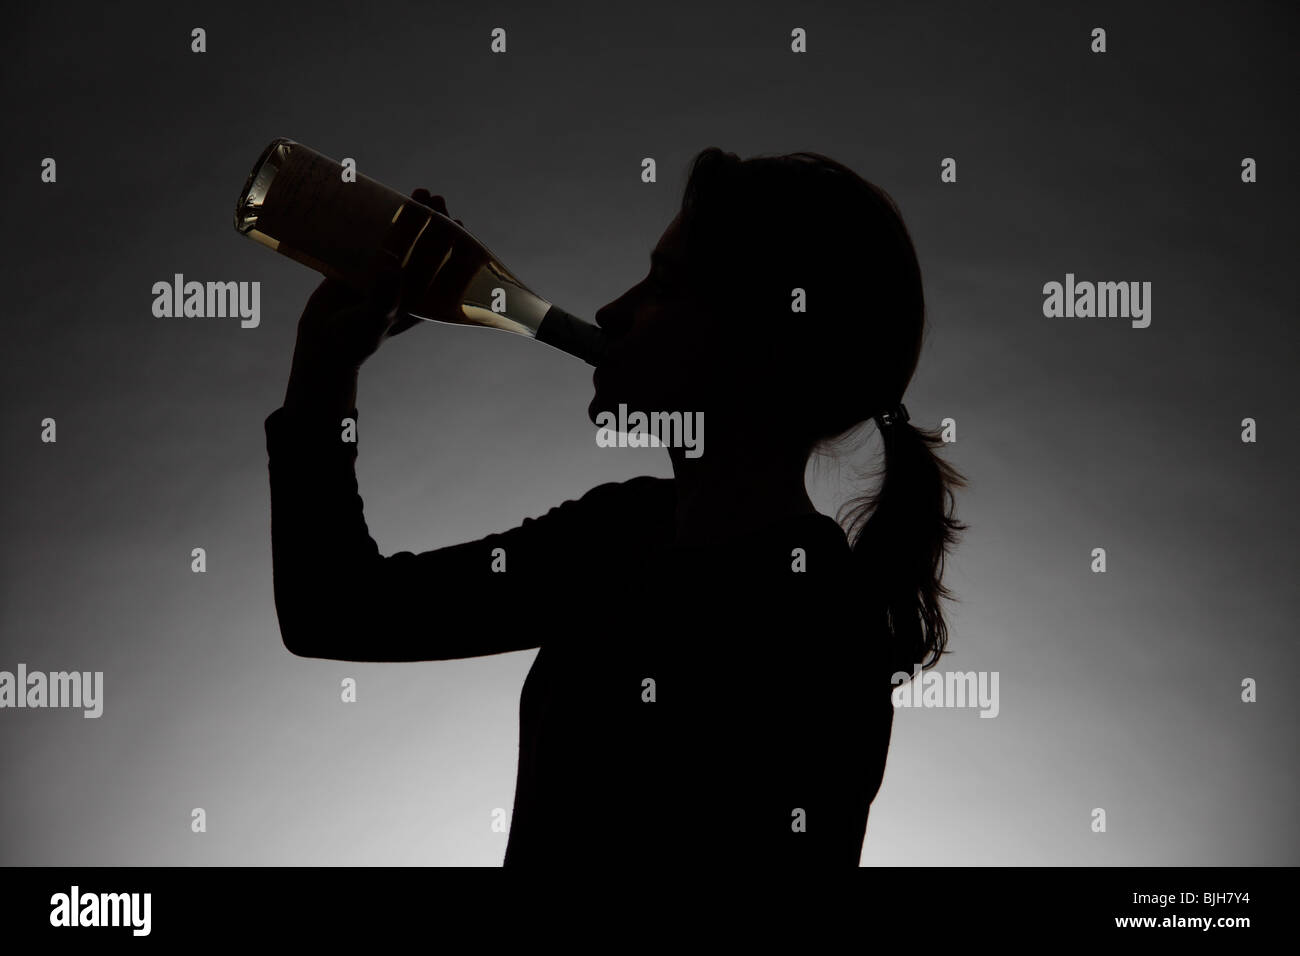 Woman drinking alcohol. Symbol: alcohol abuse, addiction - Stock Image